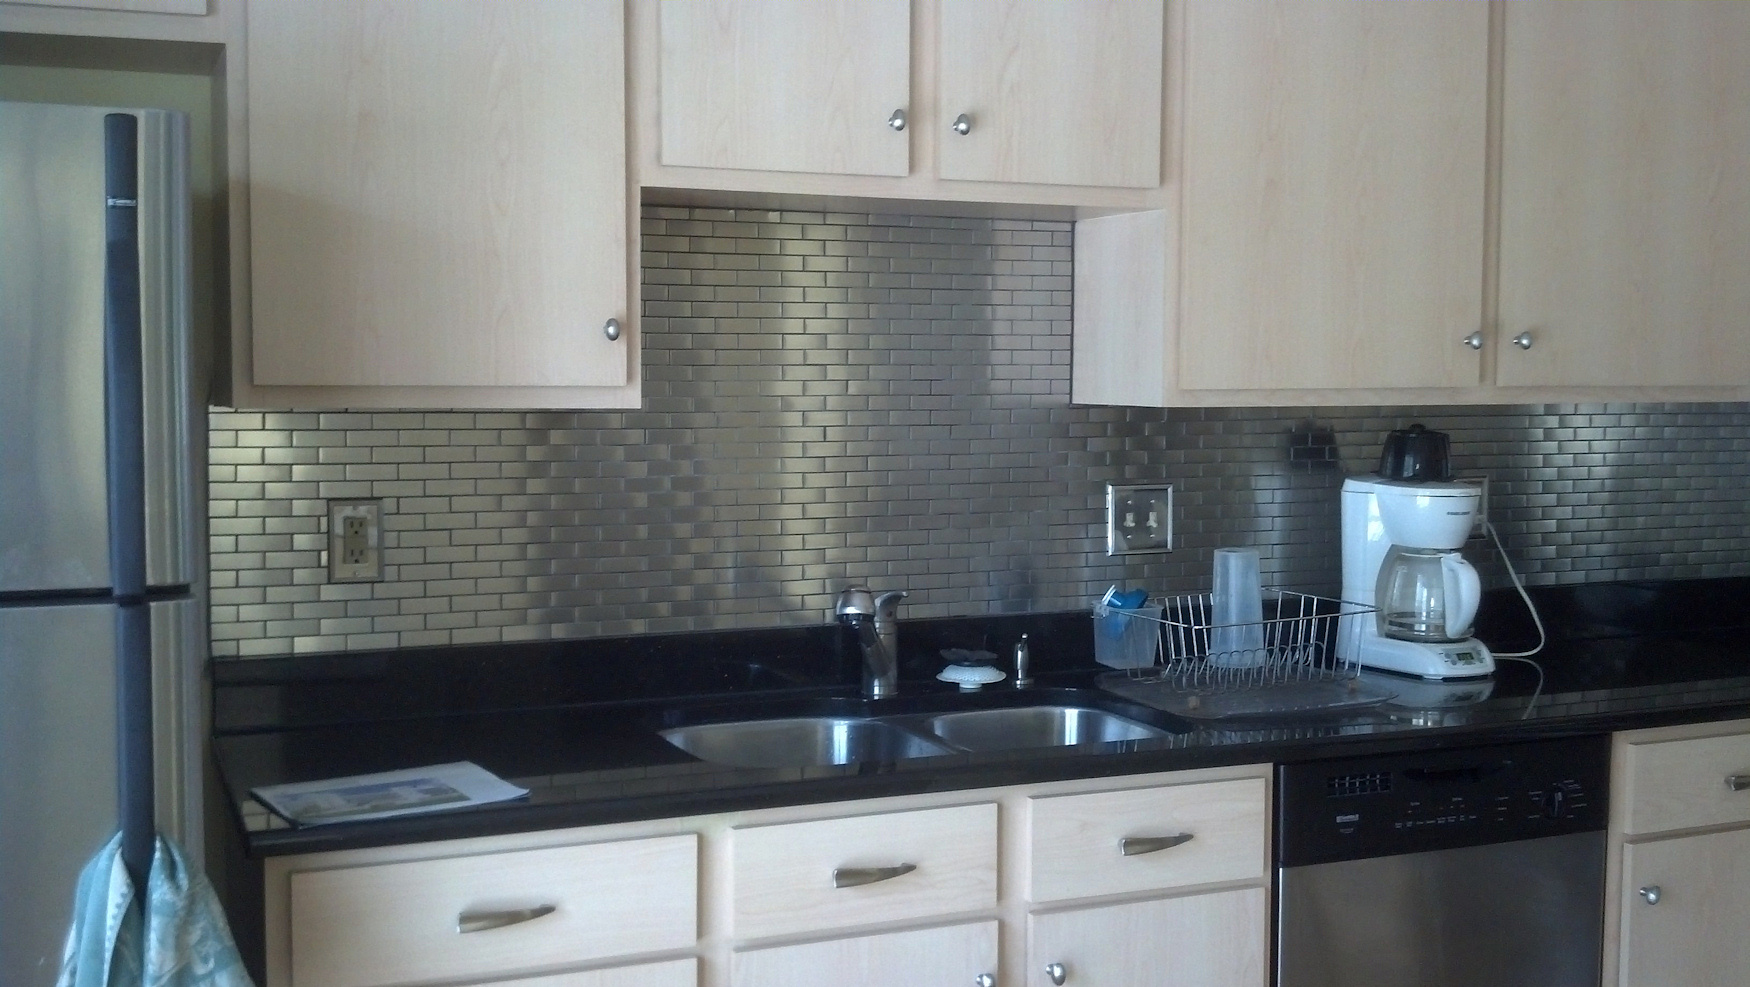 Modern ikea stainless steel backsplash homesfeed - Subway tiles in kitchen pictures ...